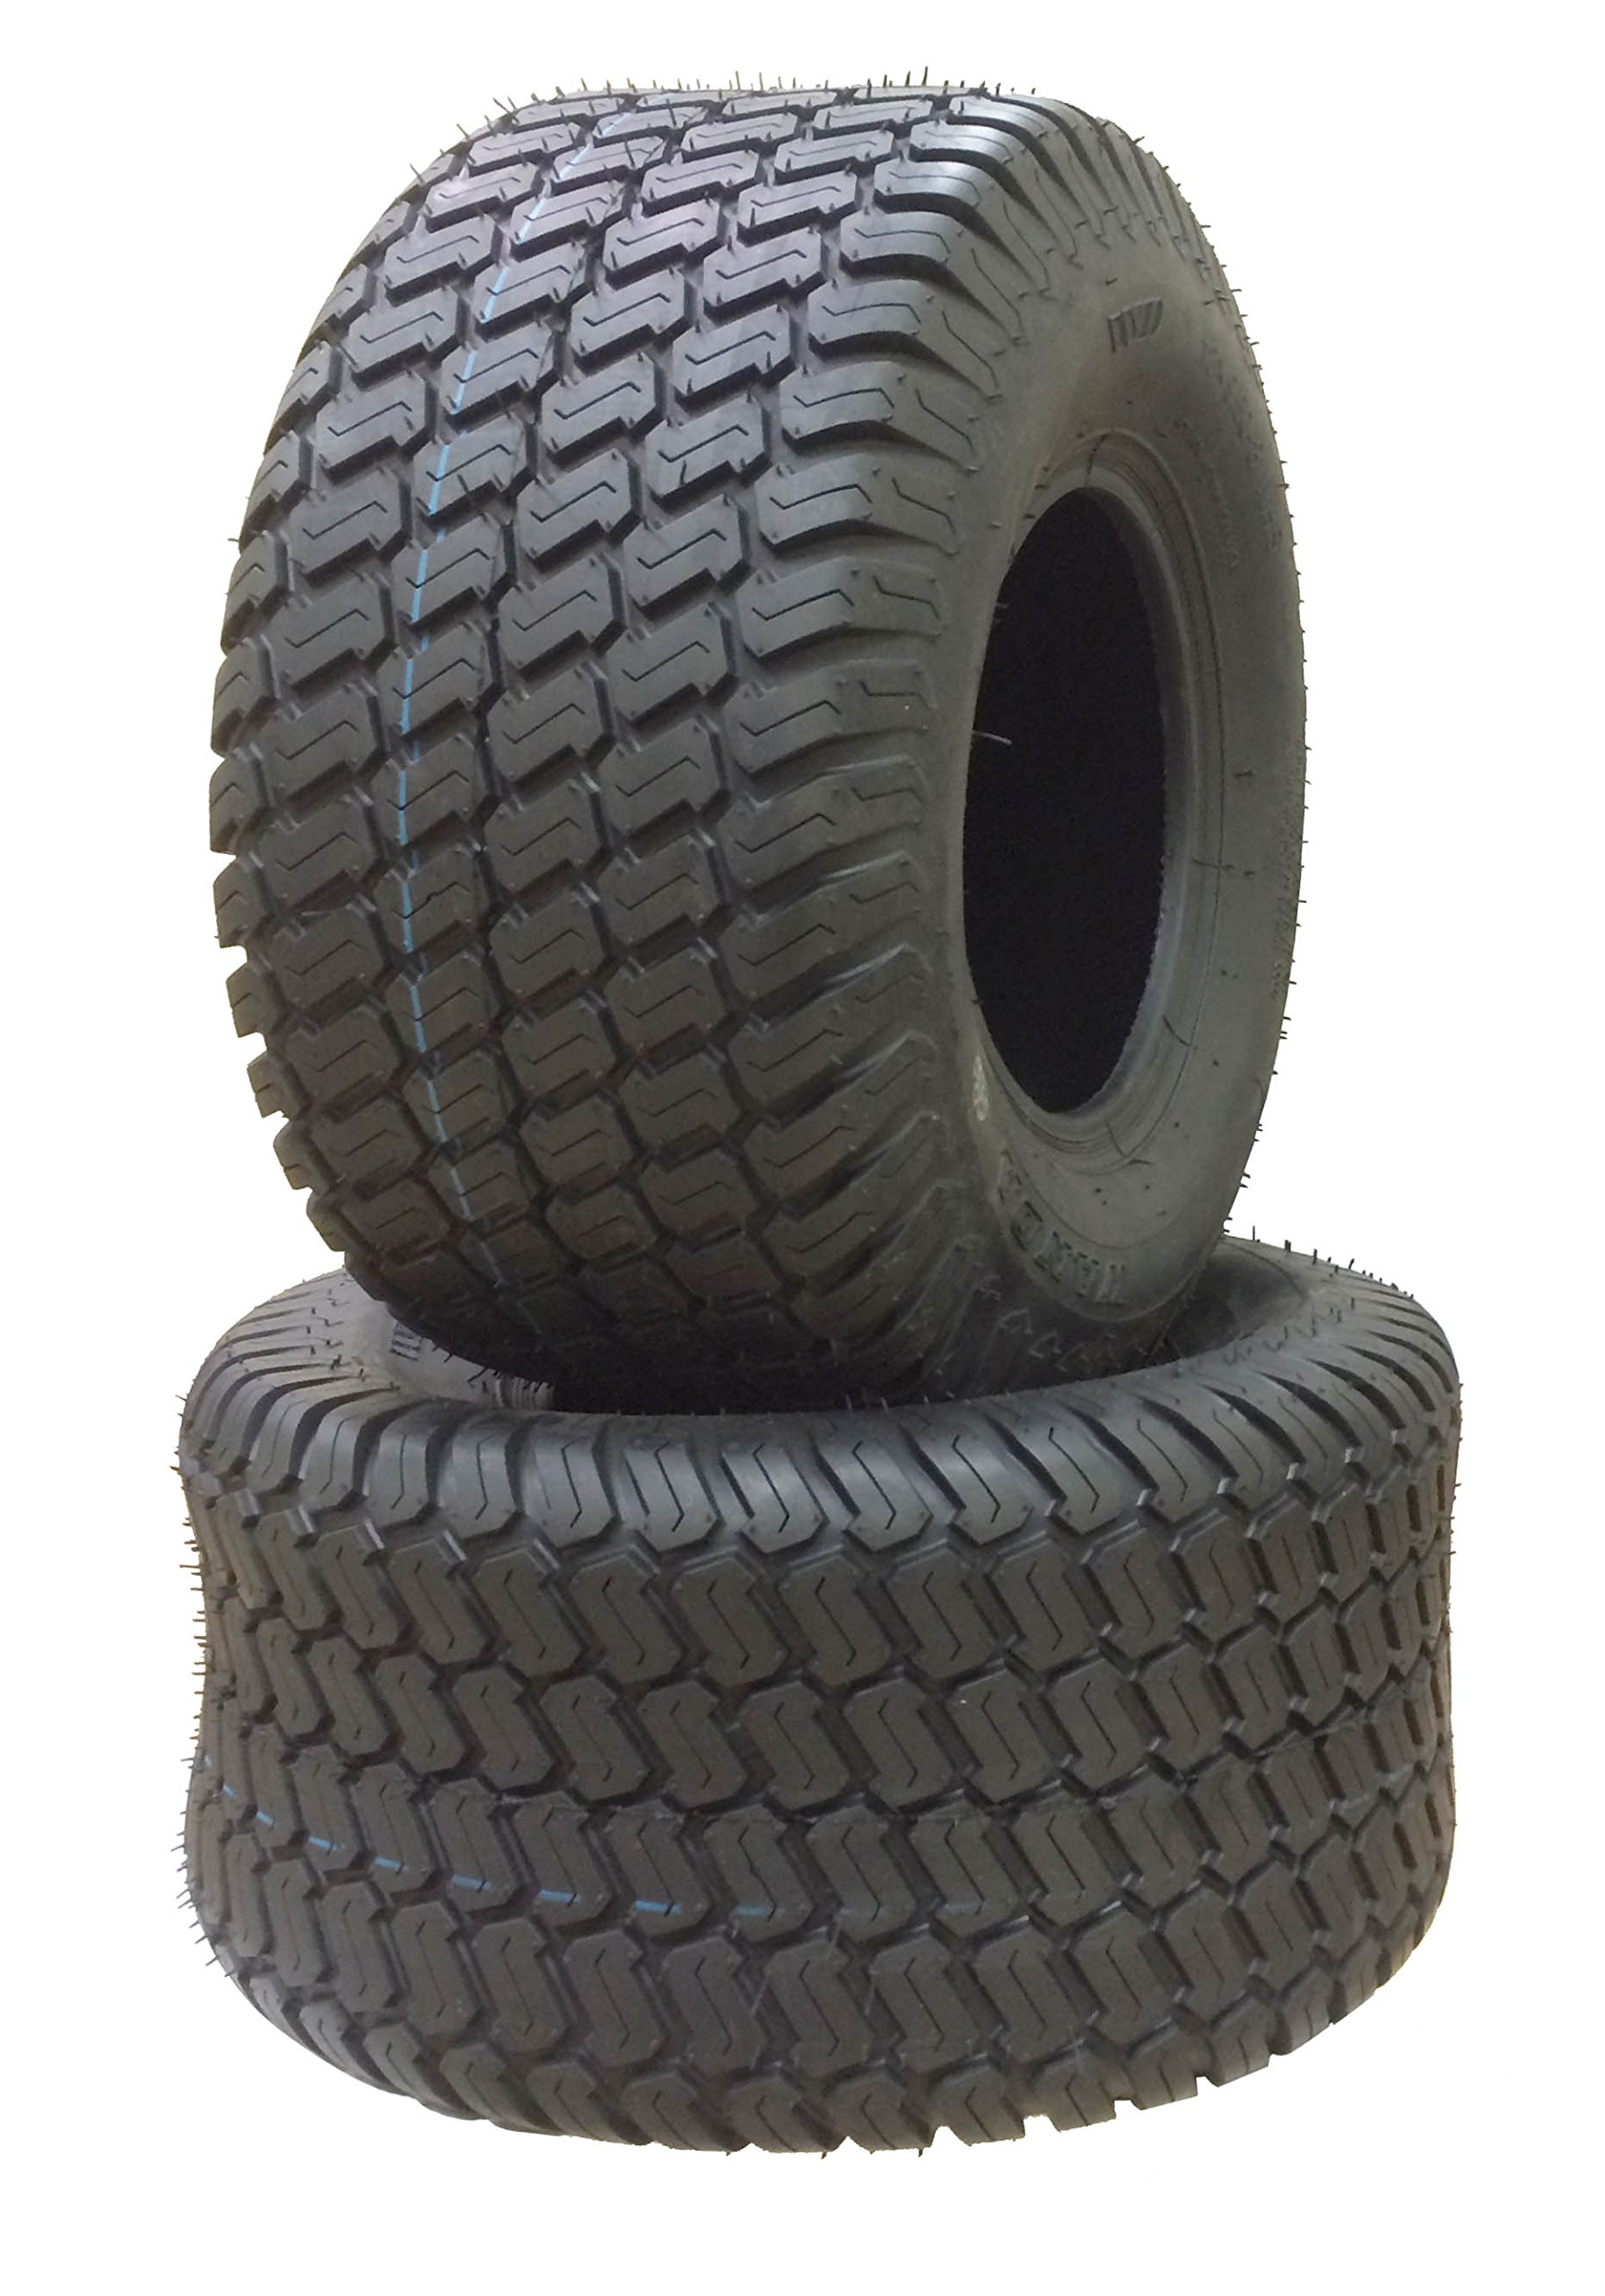 2 New 18x9.50-8 Lawn Mower Utility Cart Turf Tires P332 -13032